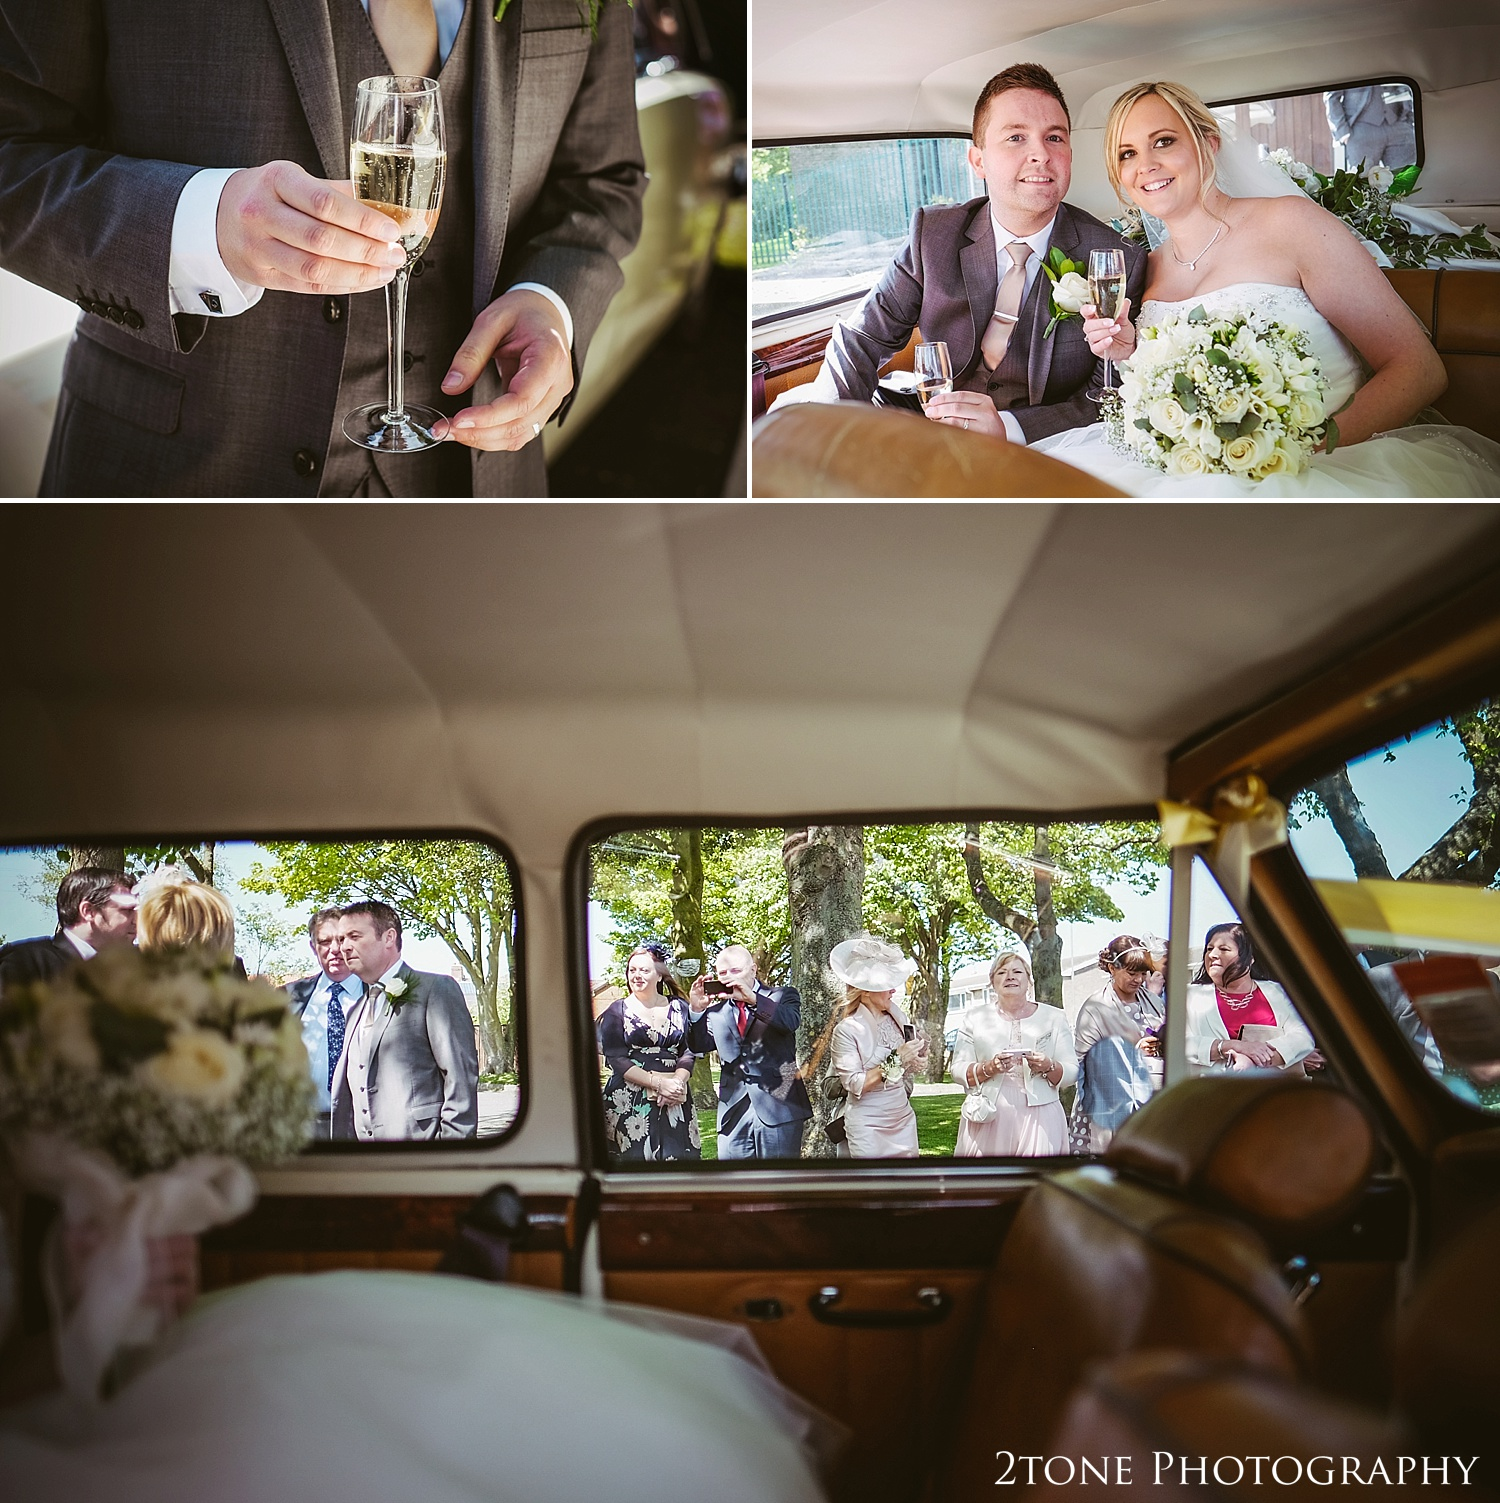 A wedding at St Cuthberts Seaham, wedding photography by www.2tonephotography.co.uk